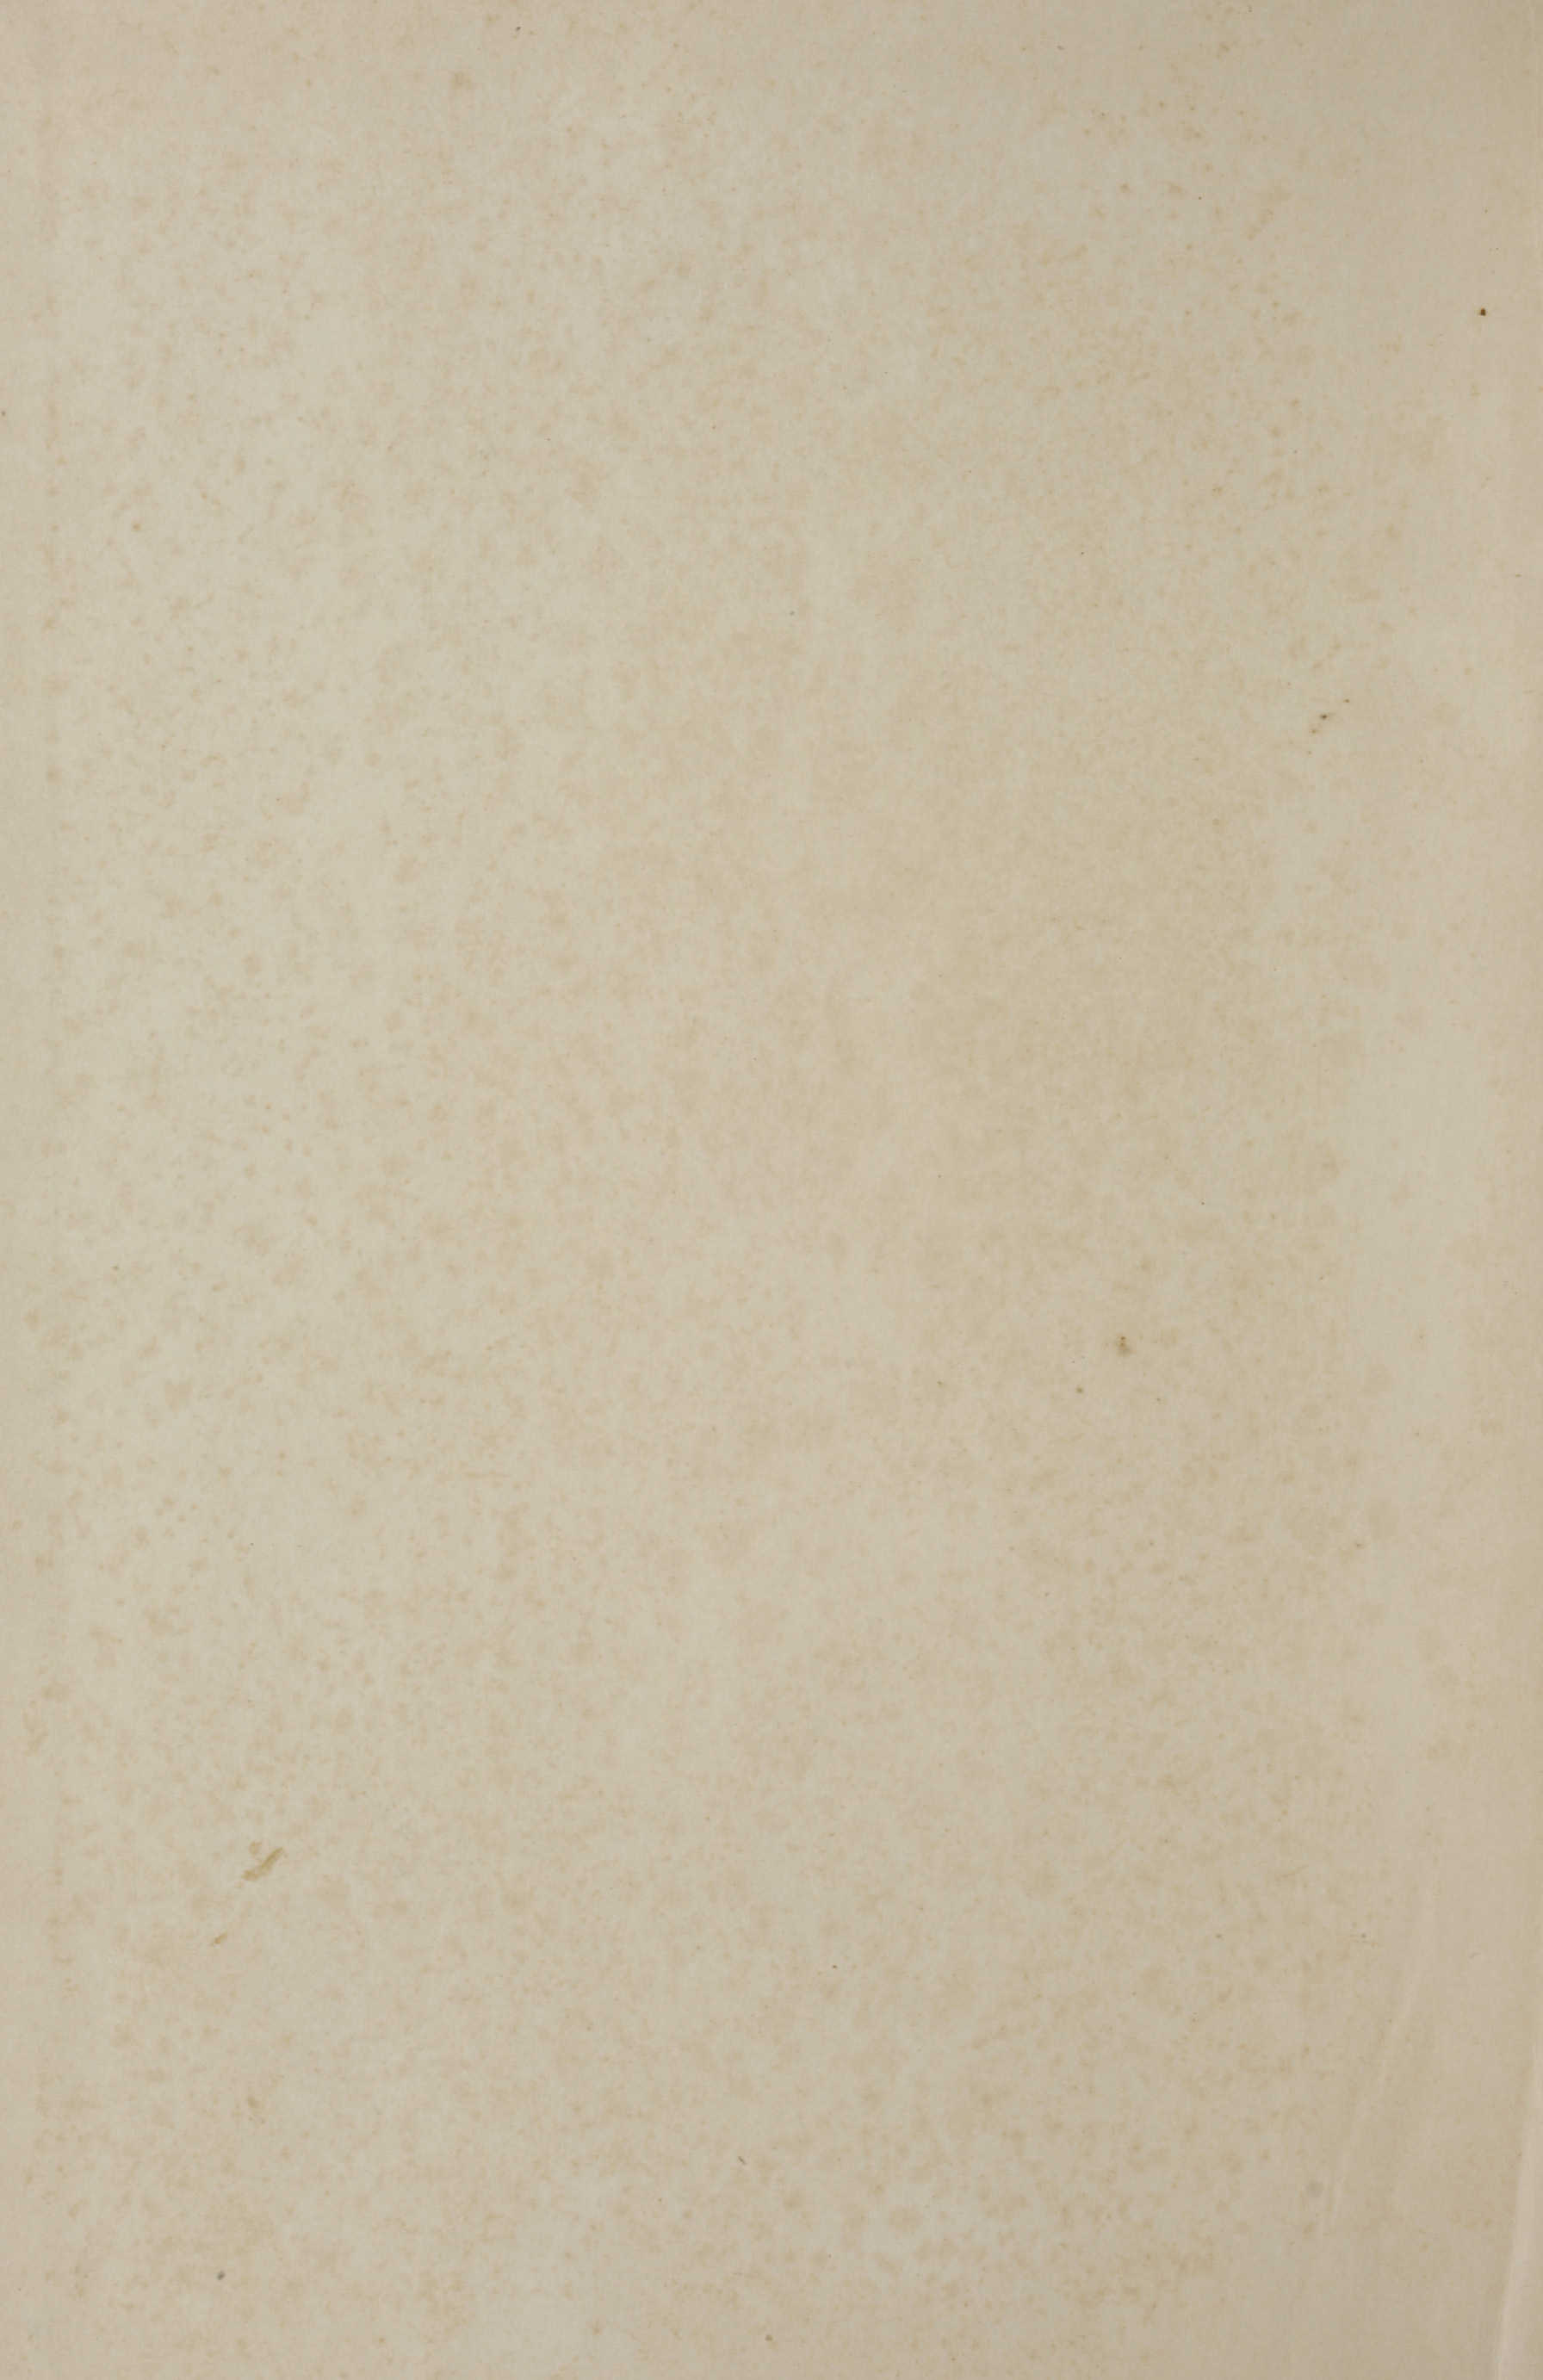 Charleston Yearbook, 1921, inside cover